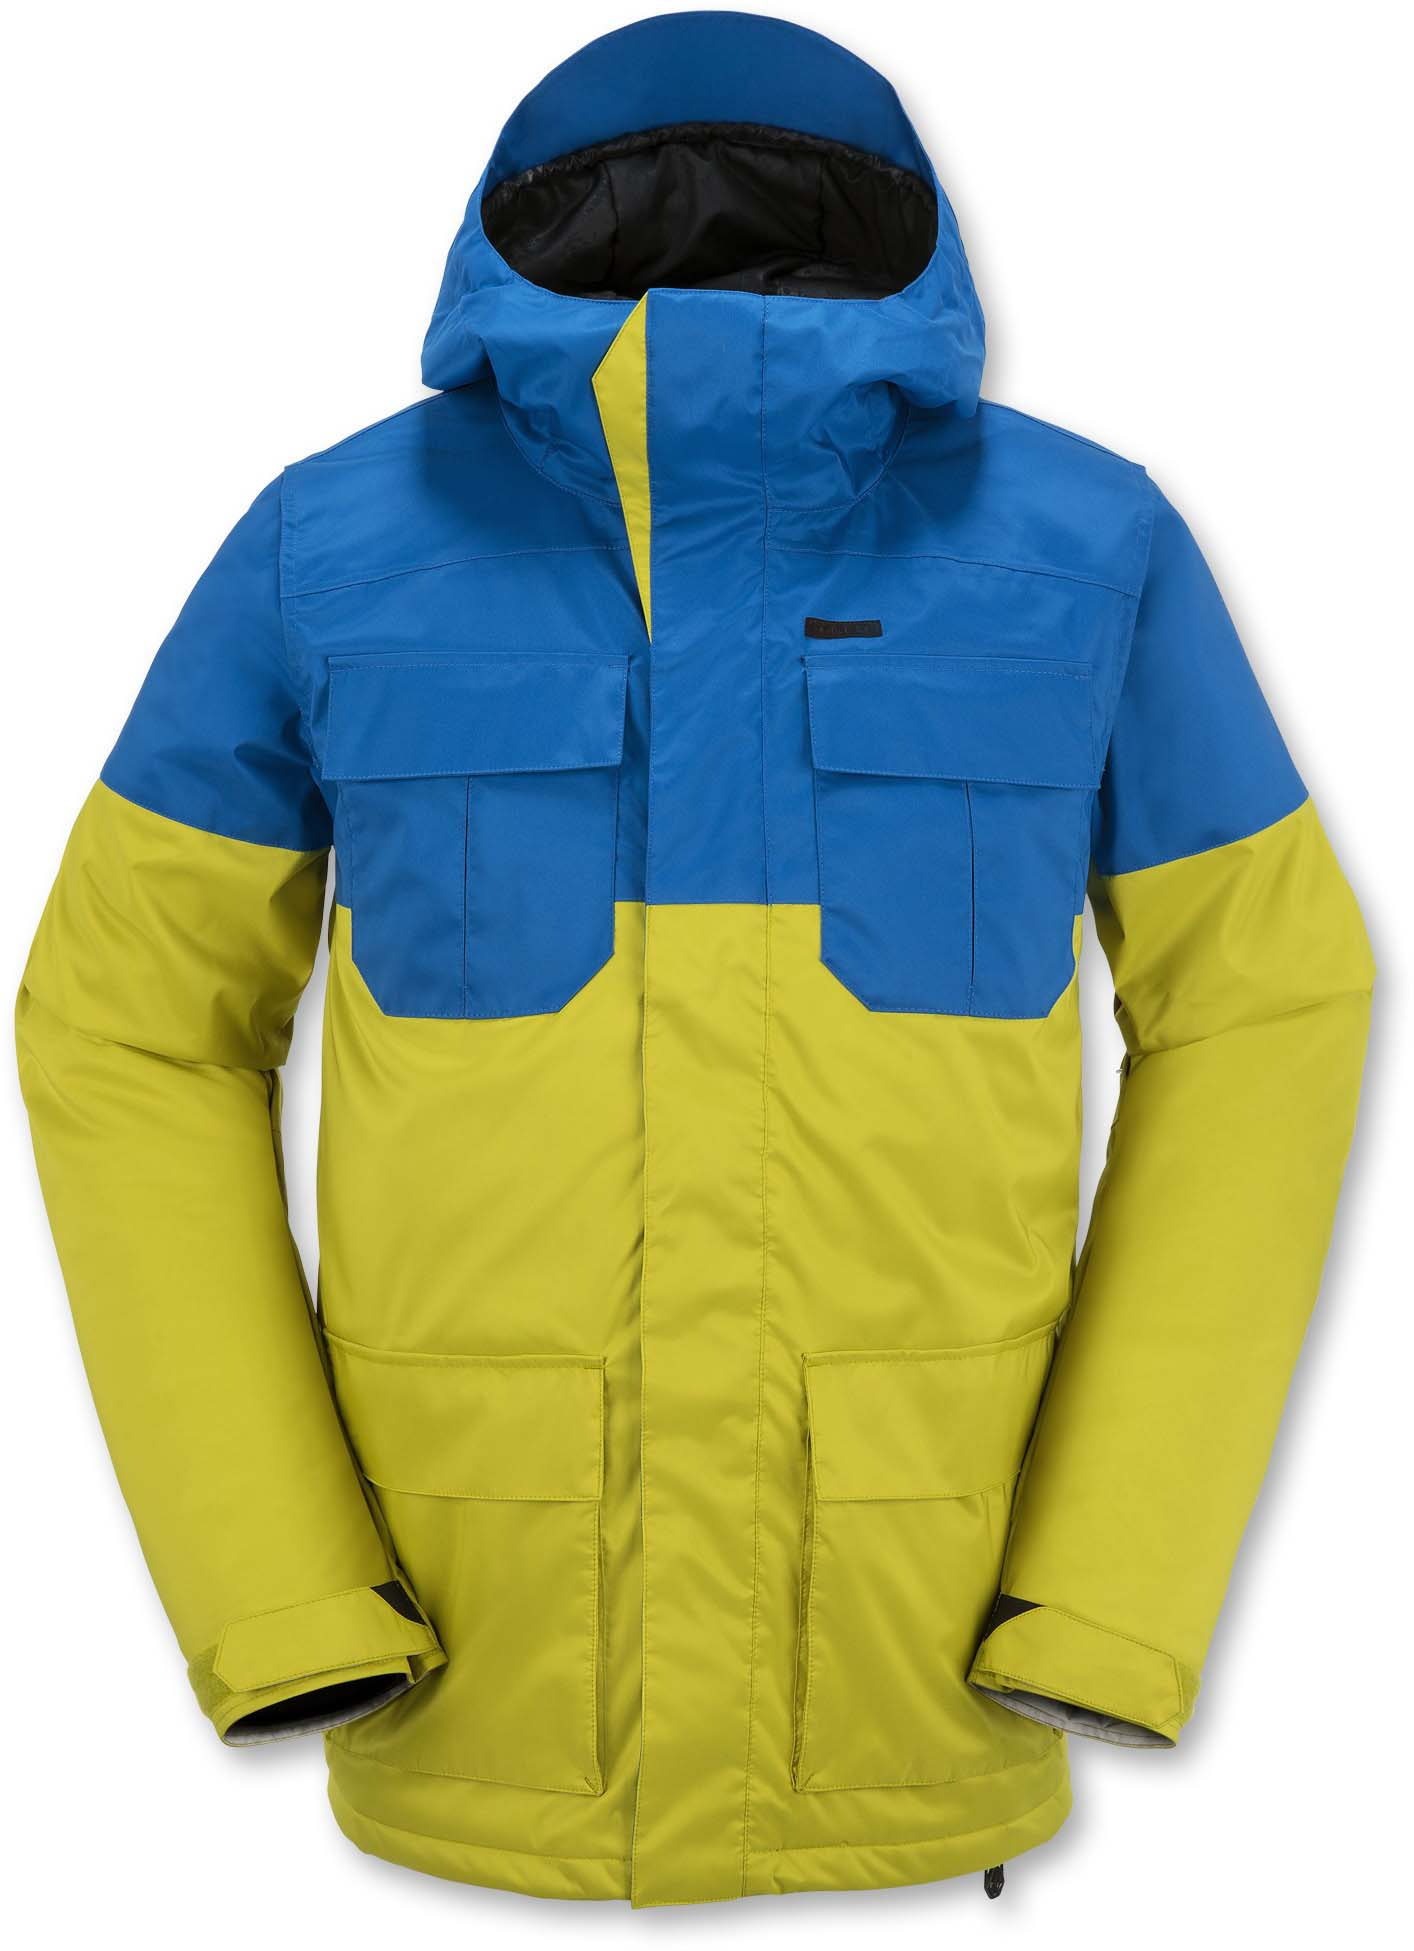 Volcom Alternate Insulated Snowboard Jacket Review The